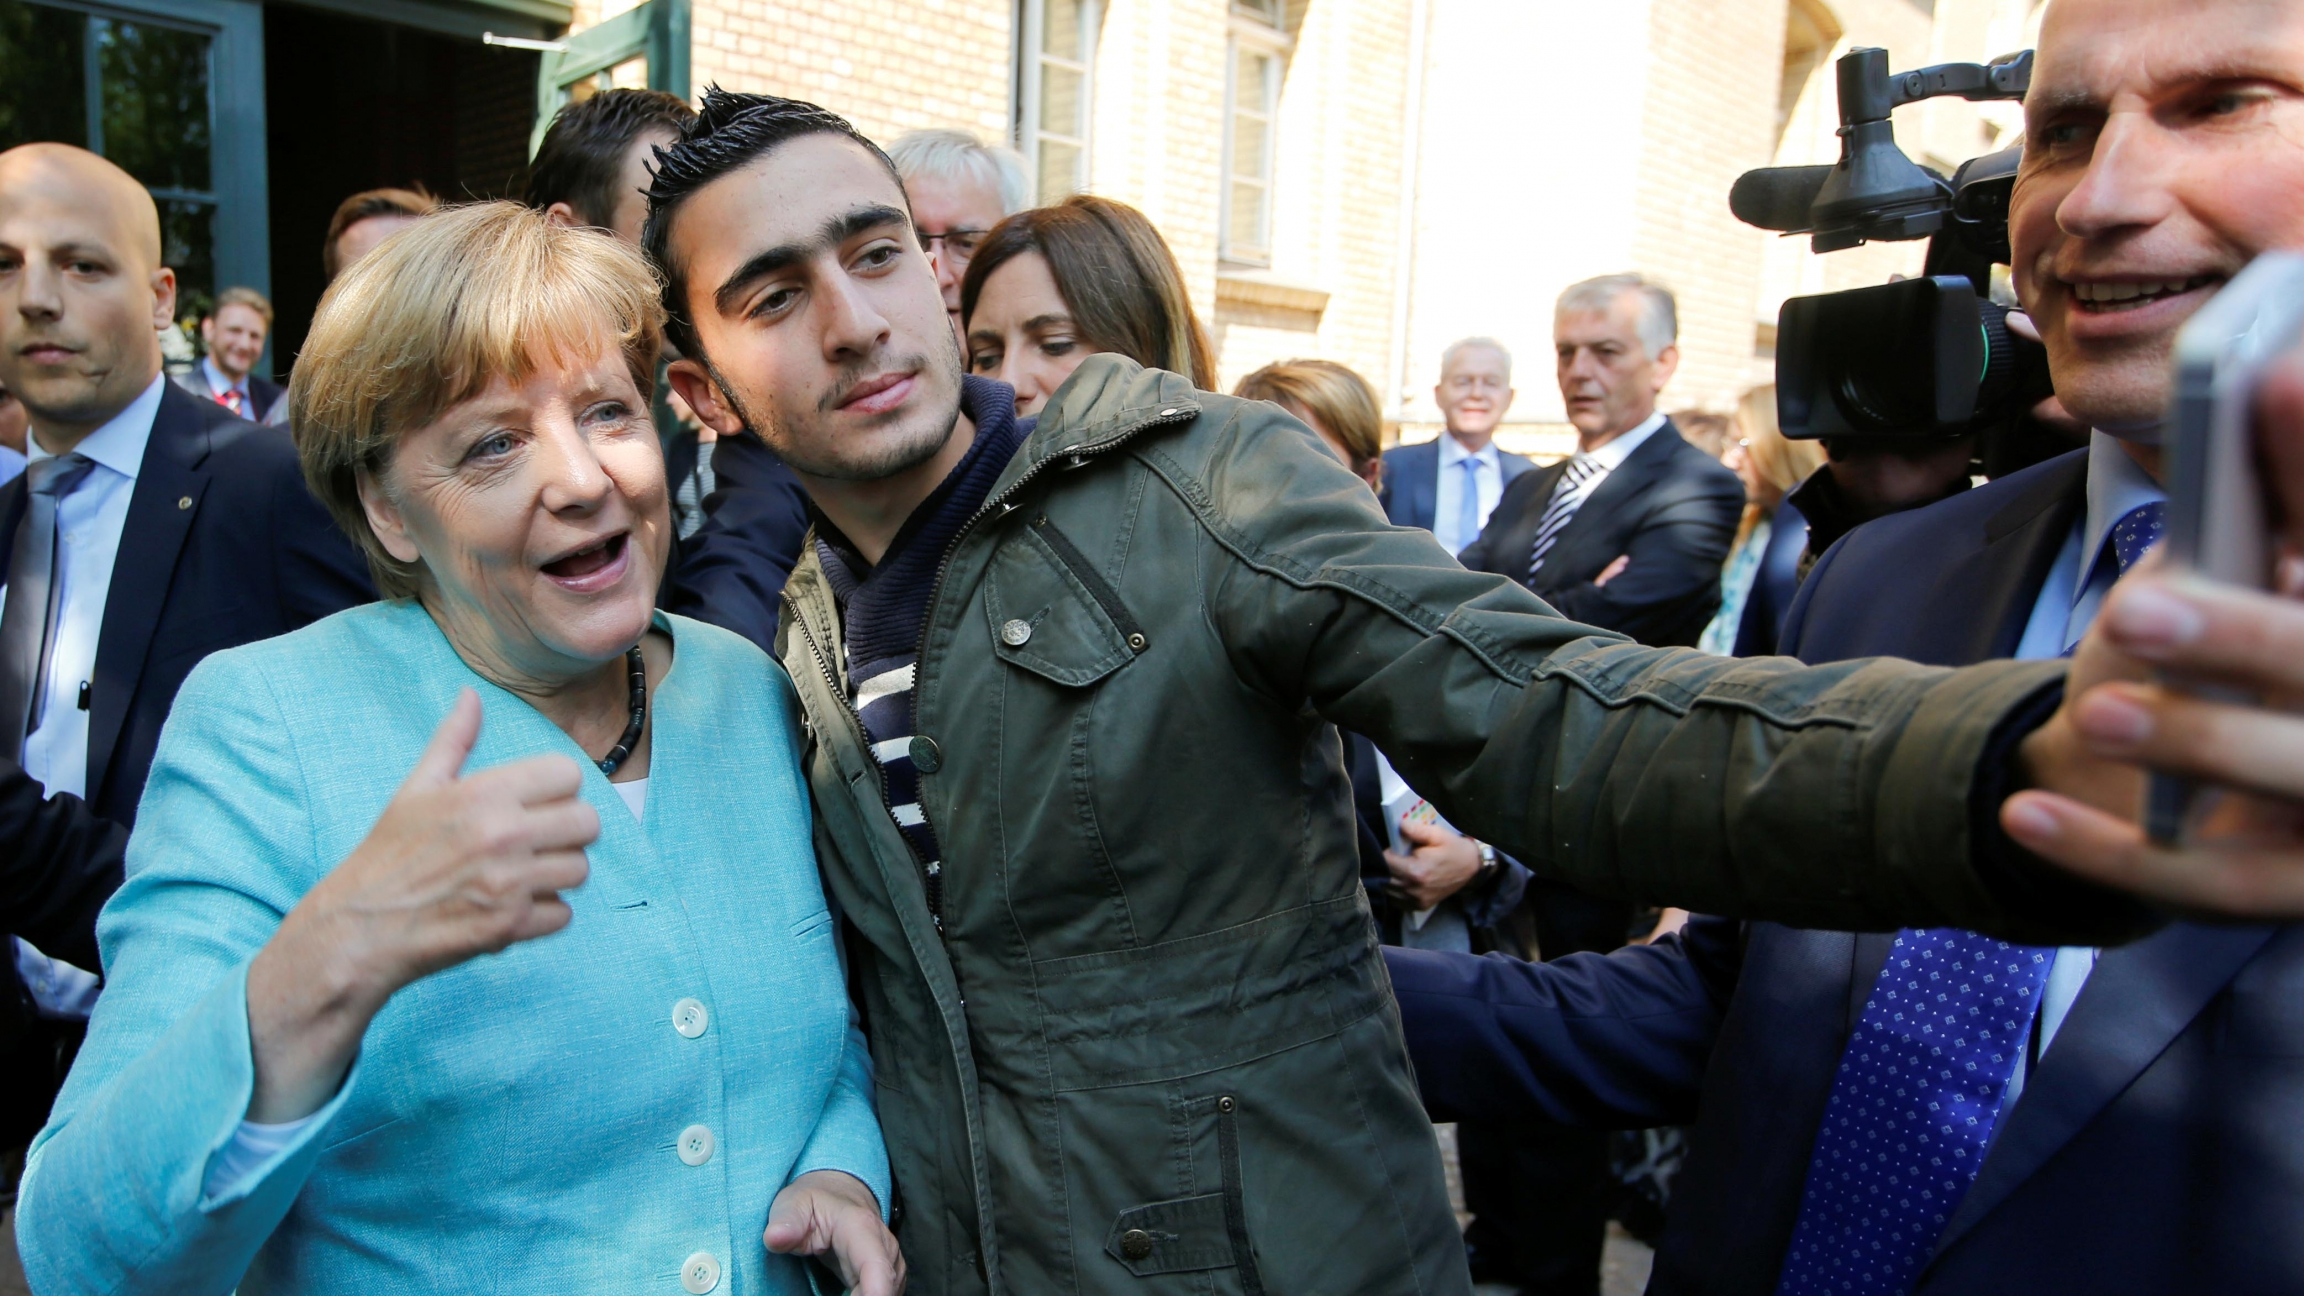 Syrian refugee Anas Modamani takes a selfie with German Chancellor Angela Merkel outside a refugee camp near the Federal Office for Migration and Refugees after registration at Berlin's Spandau district, Germany, on September 10, 2015.